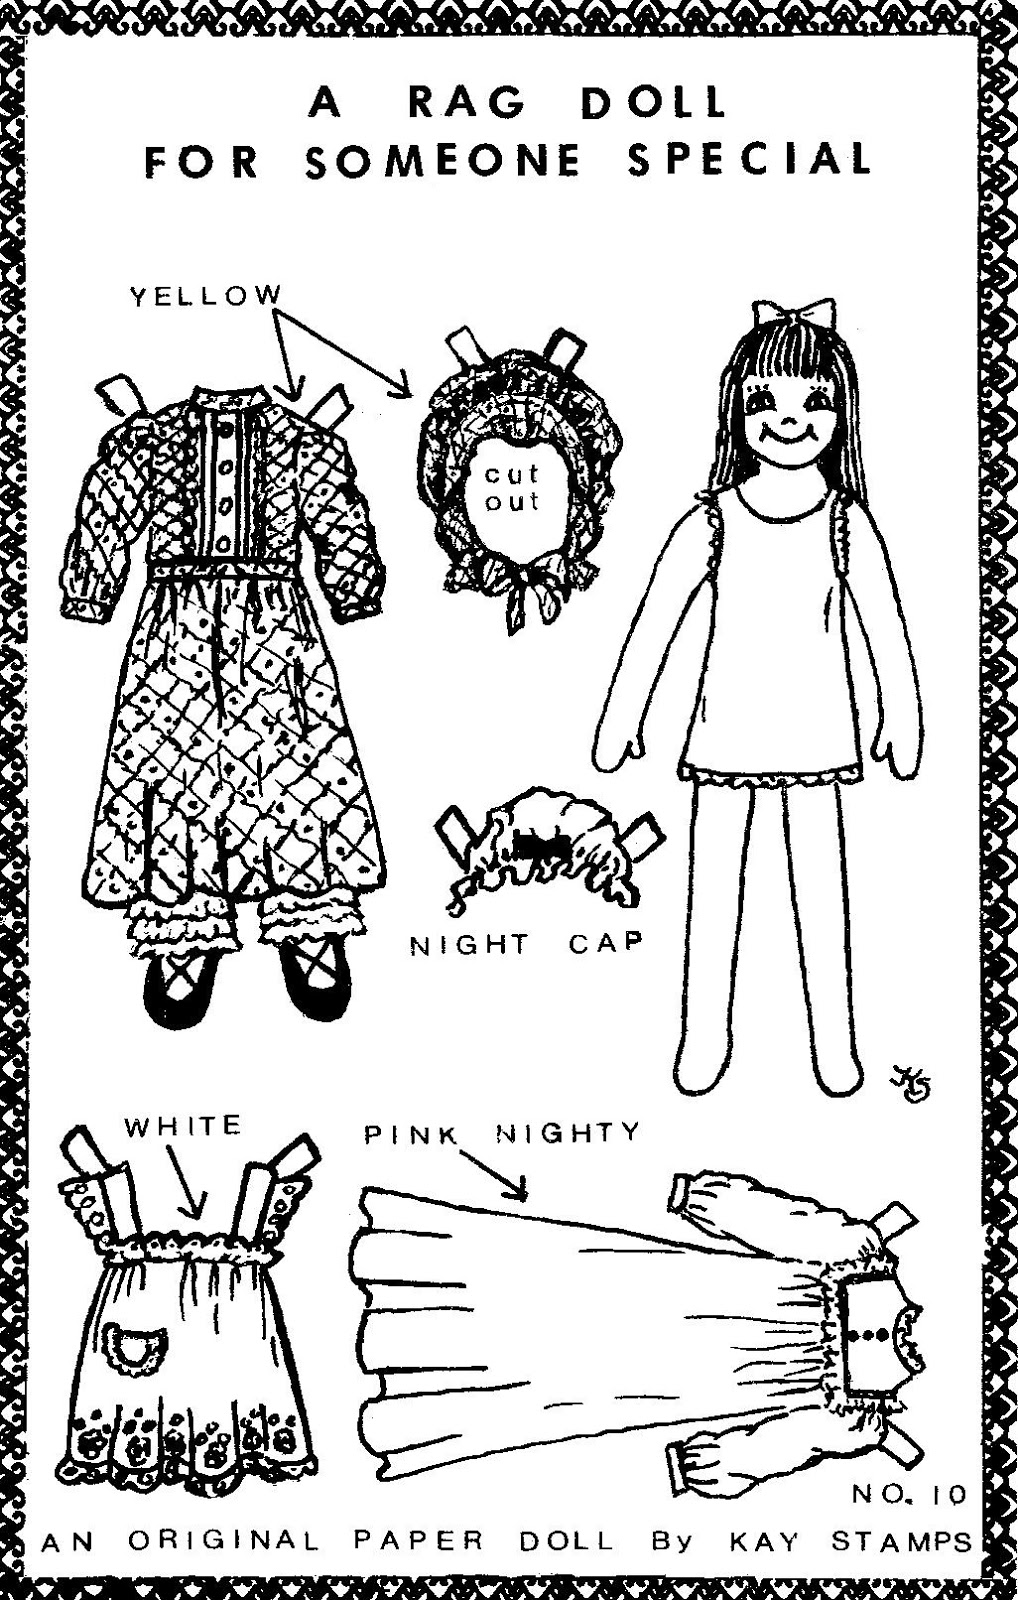 Mostly Paper Dolls Too!: Rag Doll Paper Dolls by Kay Stamps.